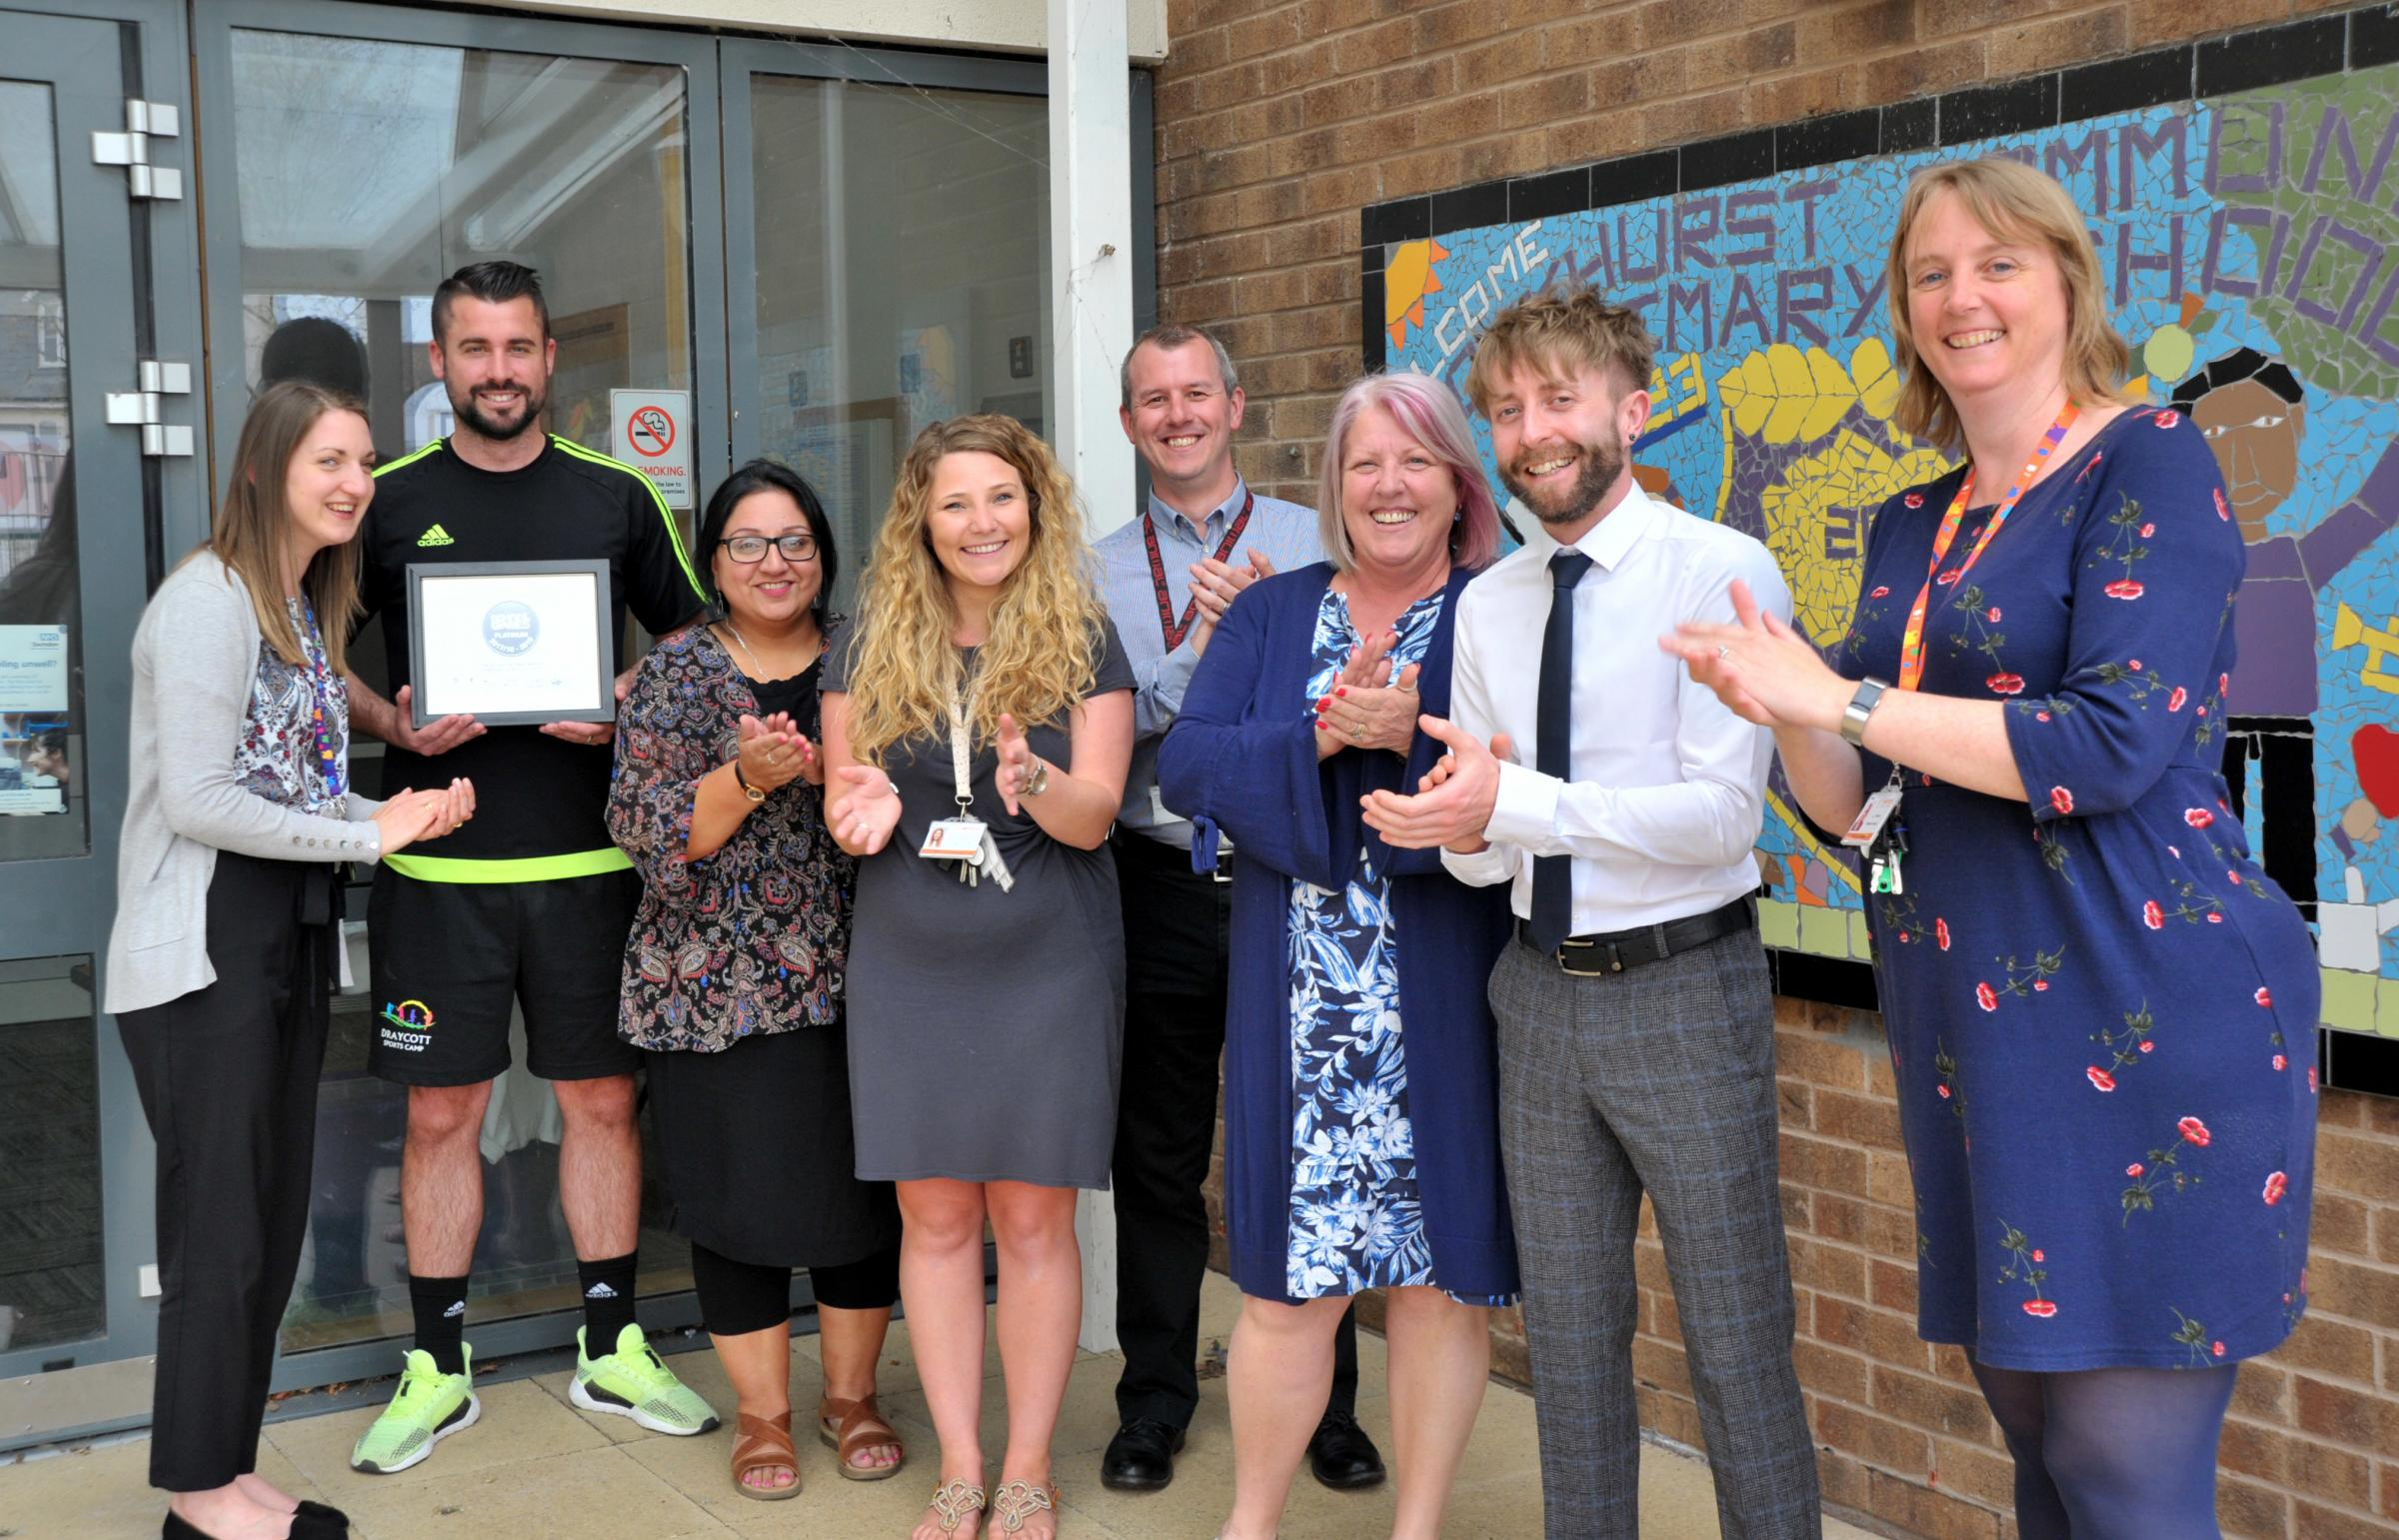 Oakhurst Primary School on the up after year of hard work by new leadership team